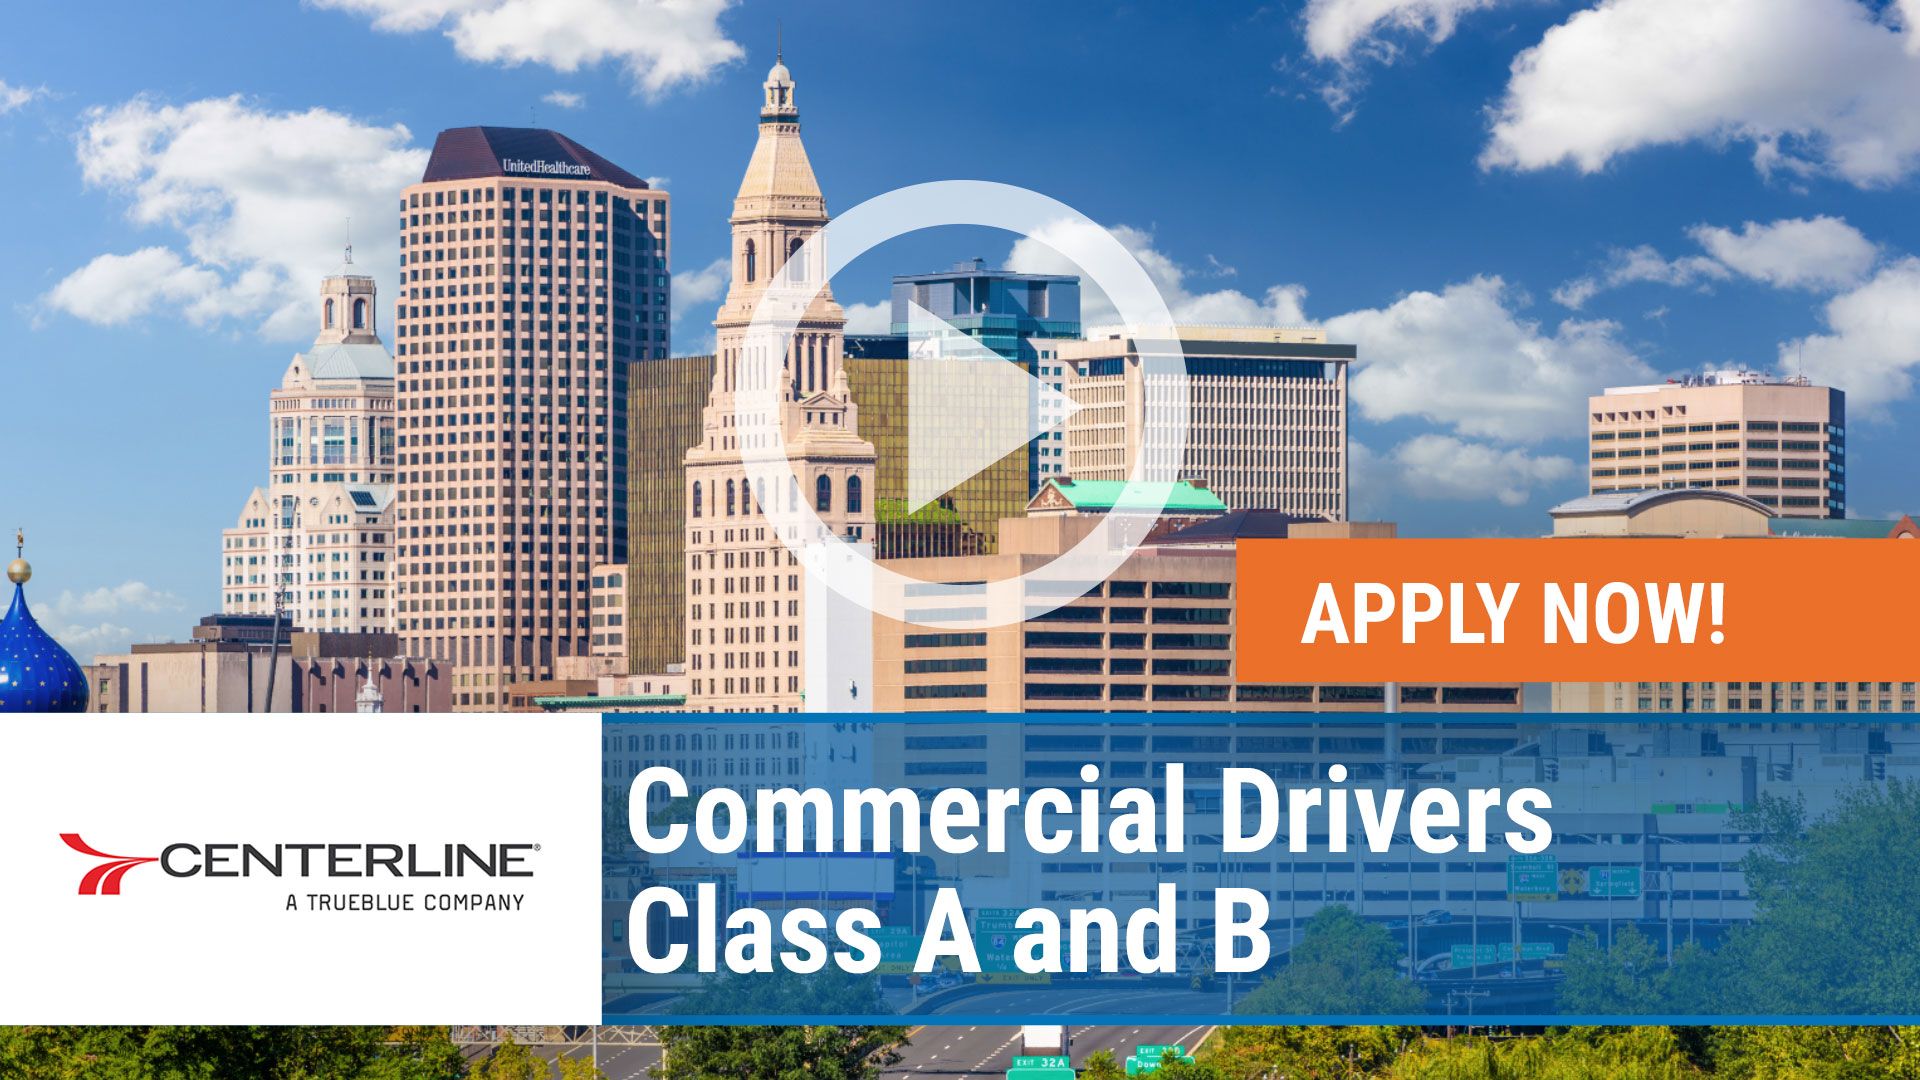 Watch our careers video for available job opening Hiring Commercial Drivers - Class A and B in Hartford, Connecticut in Hartford, Connecticut